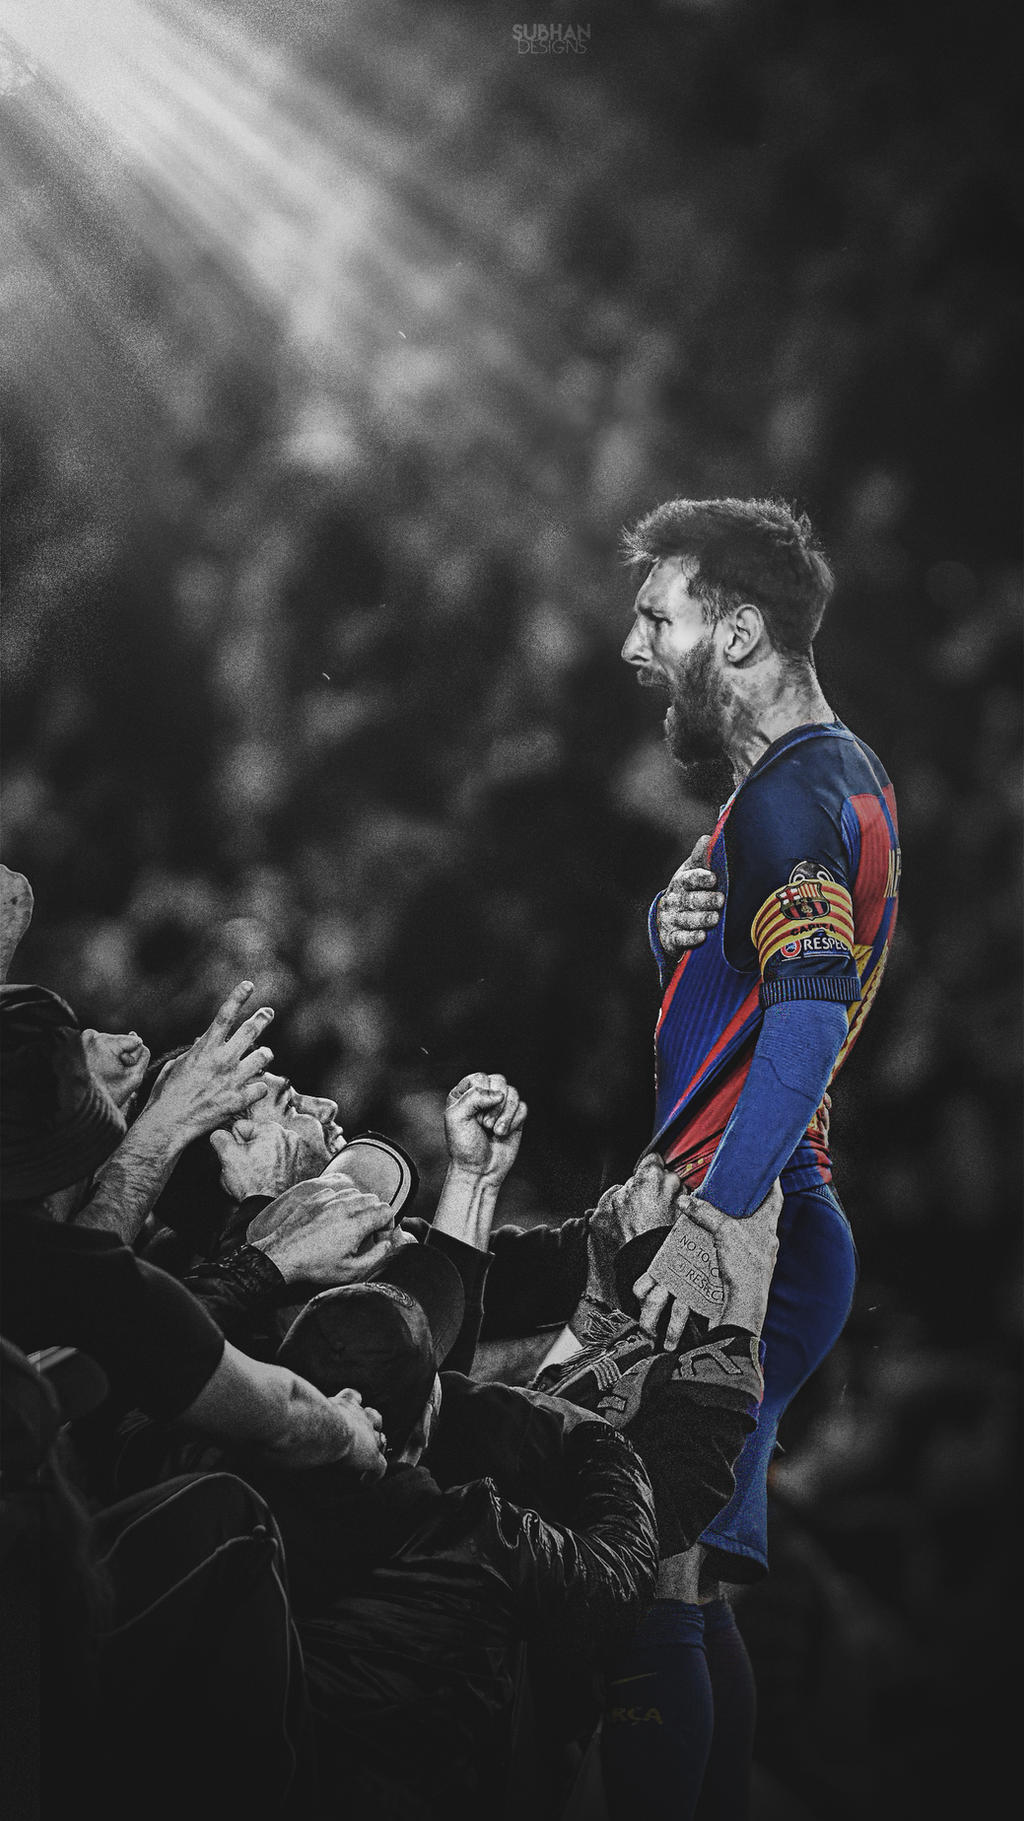 Best Hd Mobile Wallpapers 2017: Messi Mobile Wallpaper 2017 By Subhan22 On DeviantArt